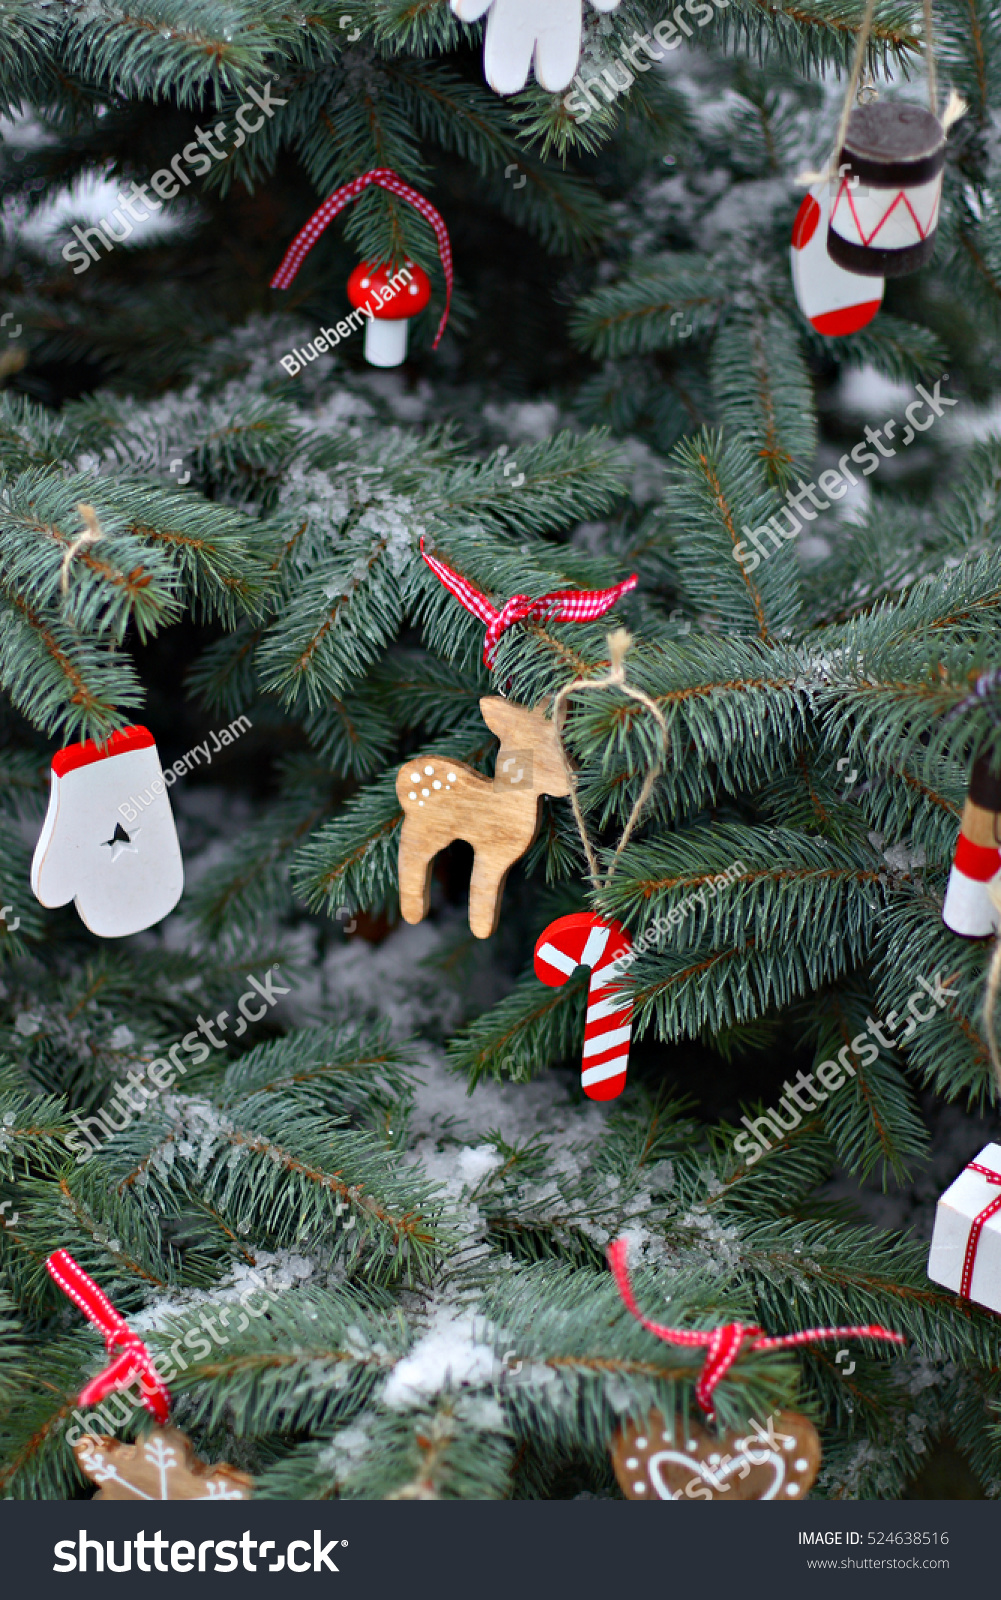 Handmade Hanging Wooden Ornaments Red White Stock Photo Edit Now 524638516